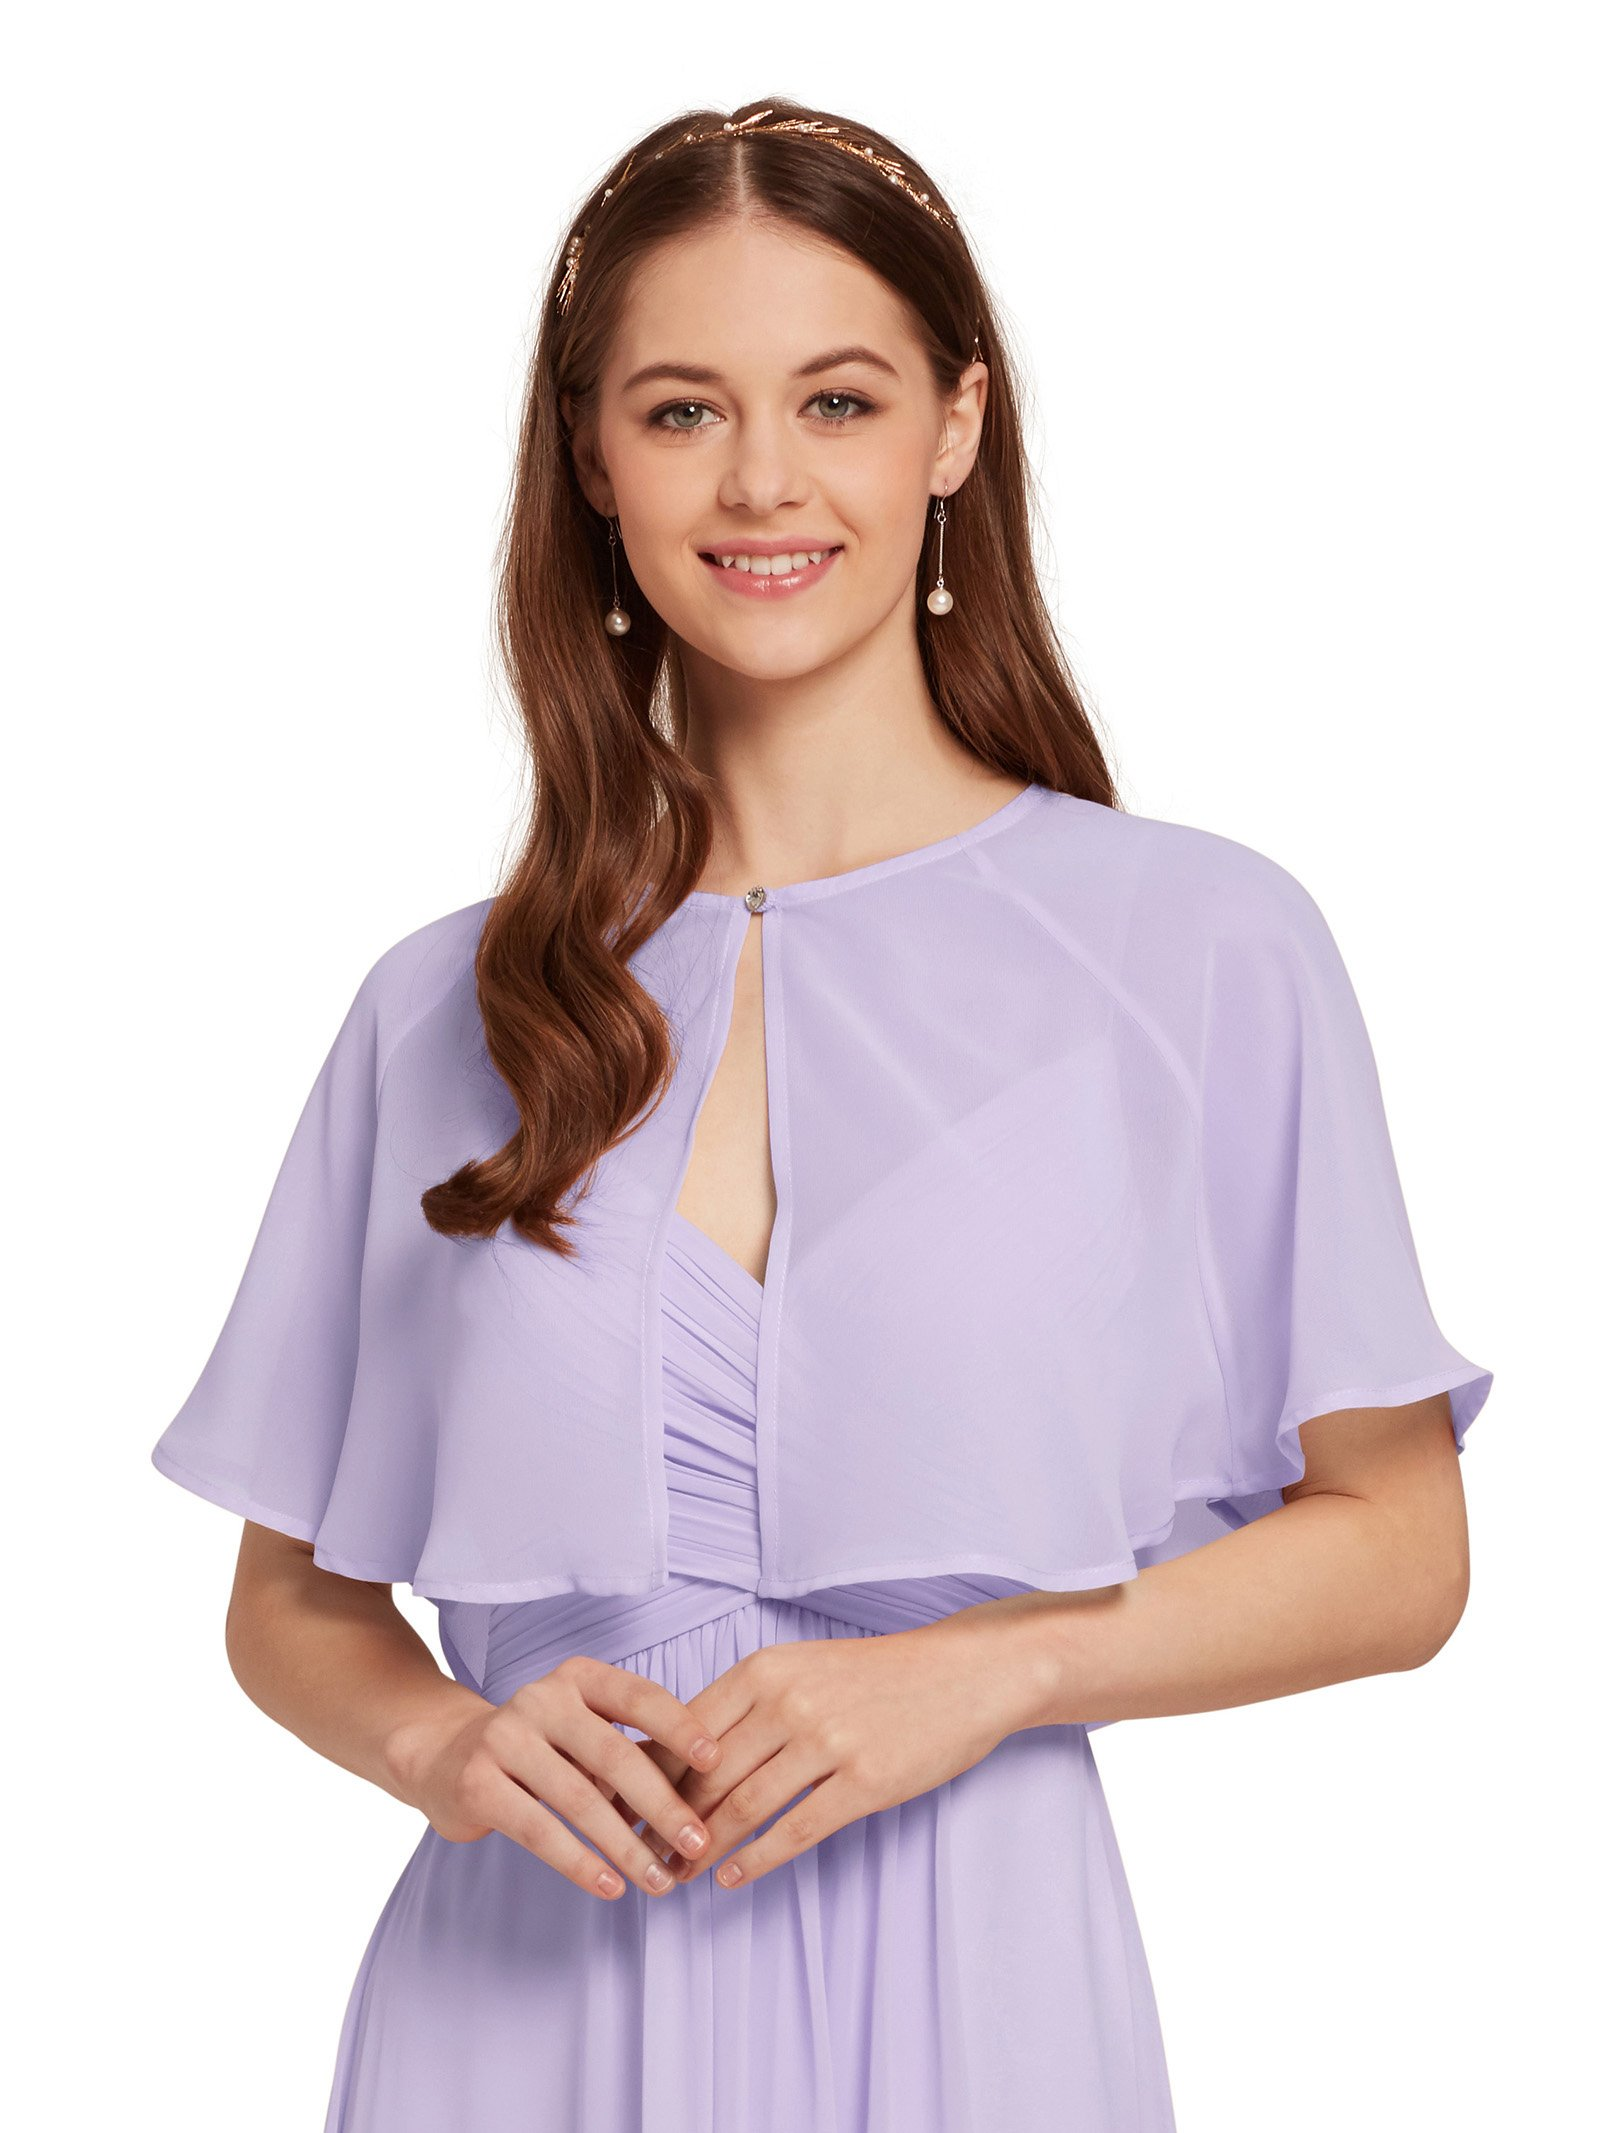 AW Women's Chiffon Cardigan Shrug Cover up Wedding Cape Wrap Shawl Bolero Jacket for Bride, Purple, L